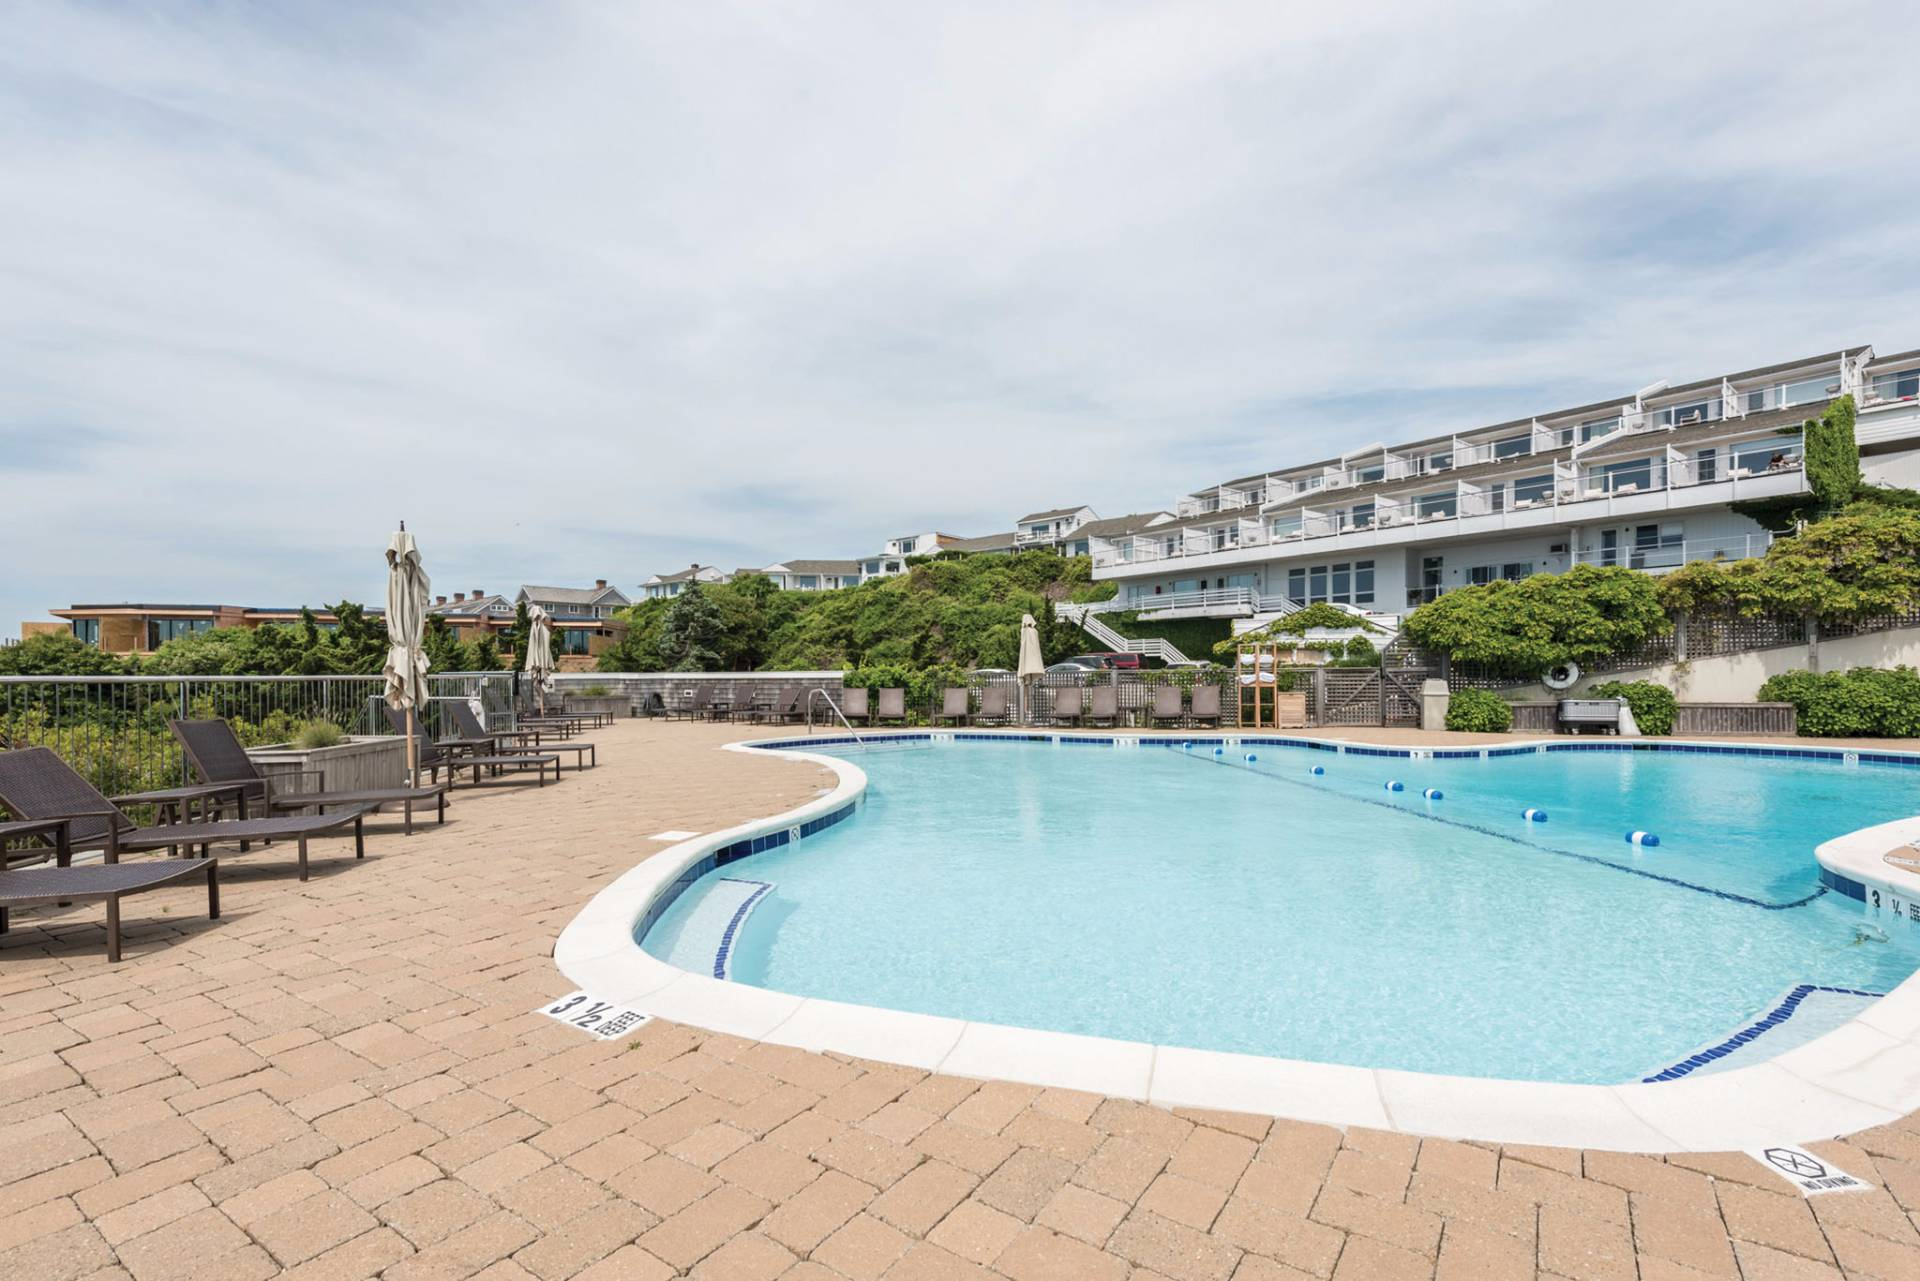 Additional photo for property listing at Gurney's Residences - Incredible Oceanfront Opportunity 272 Old Montauk Highway, Salt Sea #4,  Montauk, New York